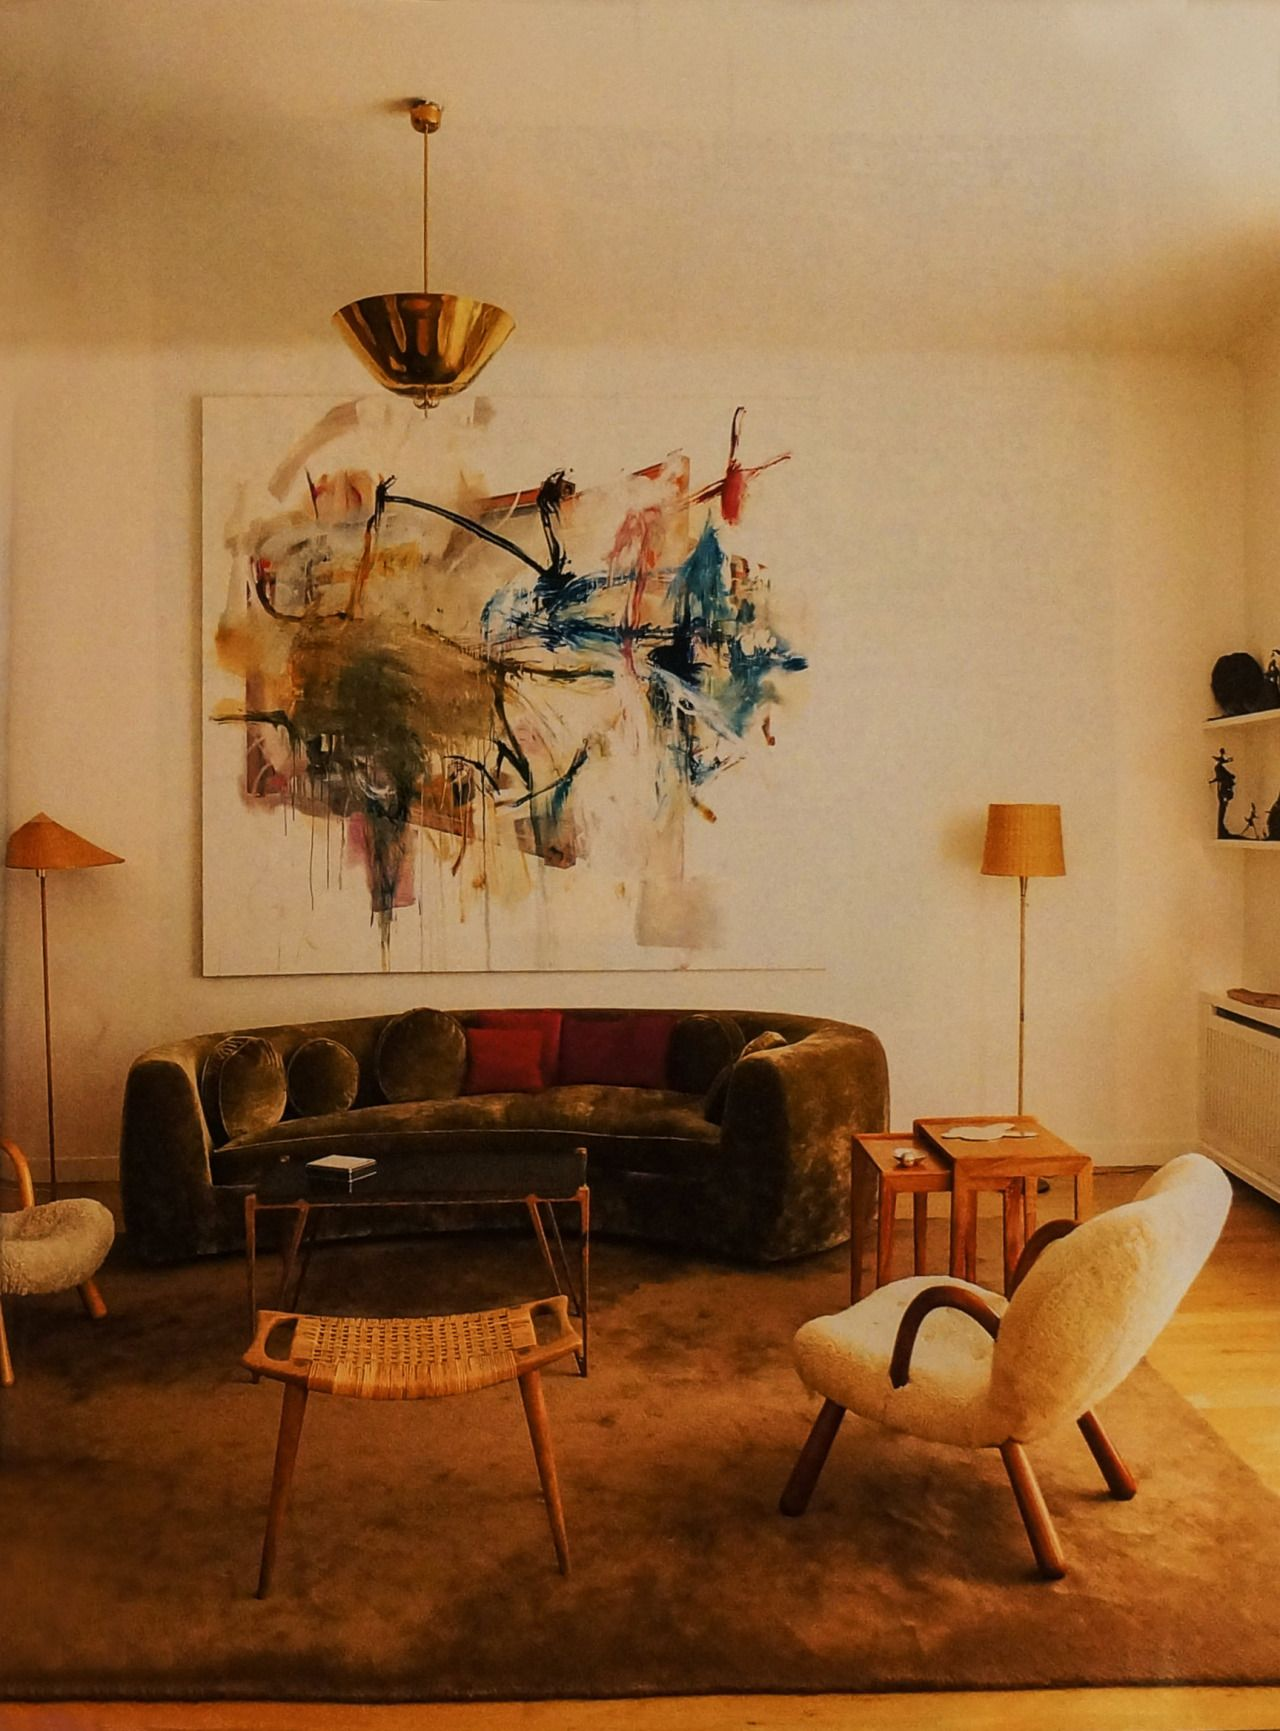 Scandinavian Collectors The Paris Apartment Of Gallery Owners Samia Saouma World Of Interiors Chandelier In Living Room Art Deco Interior